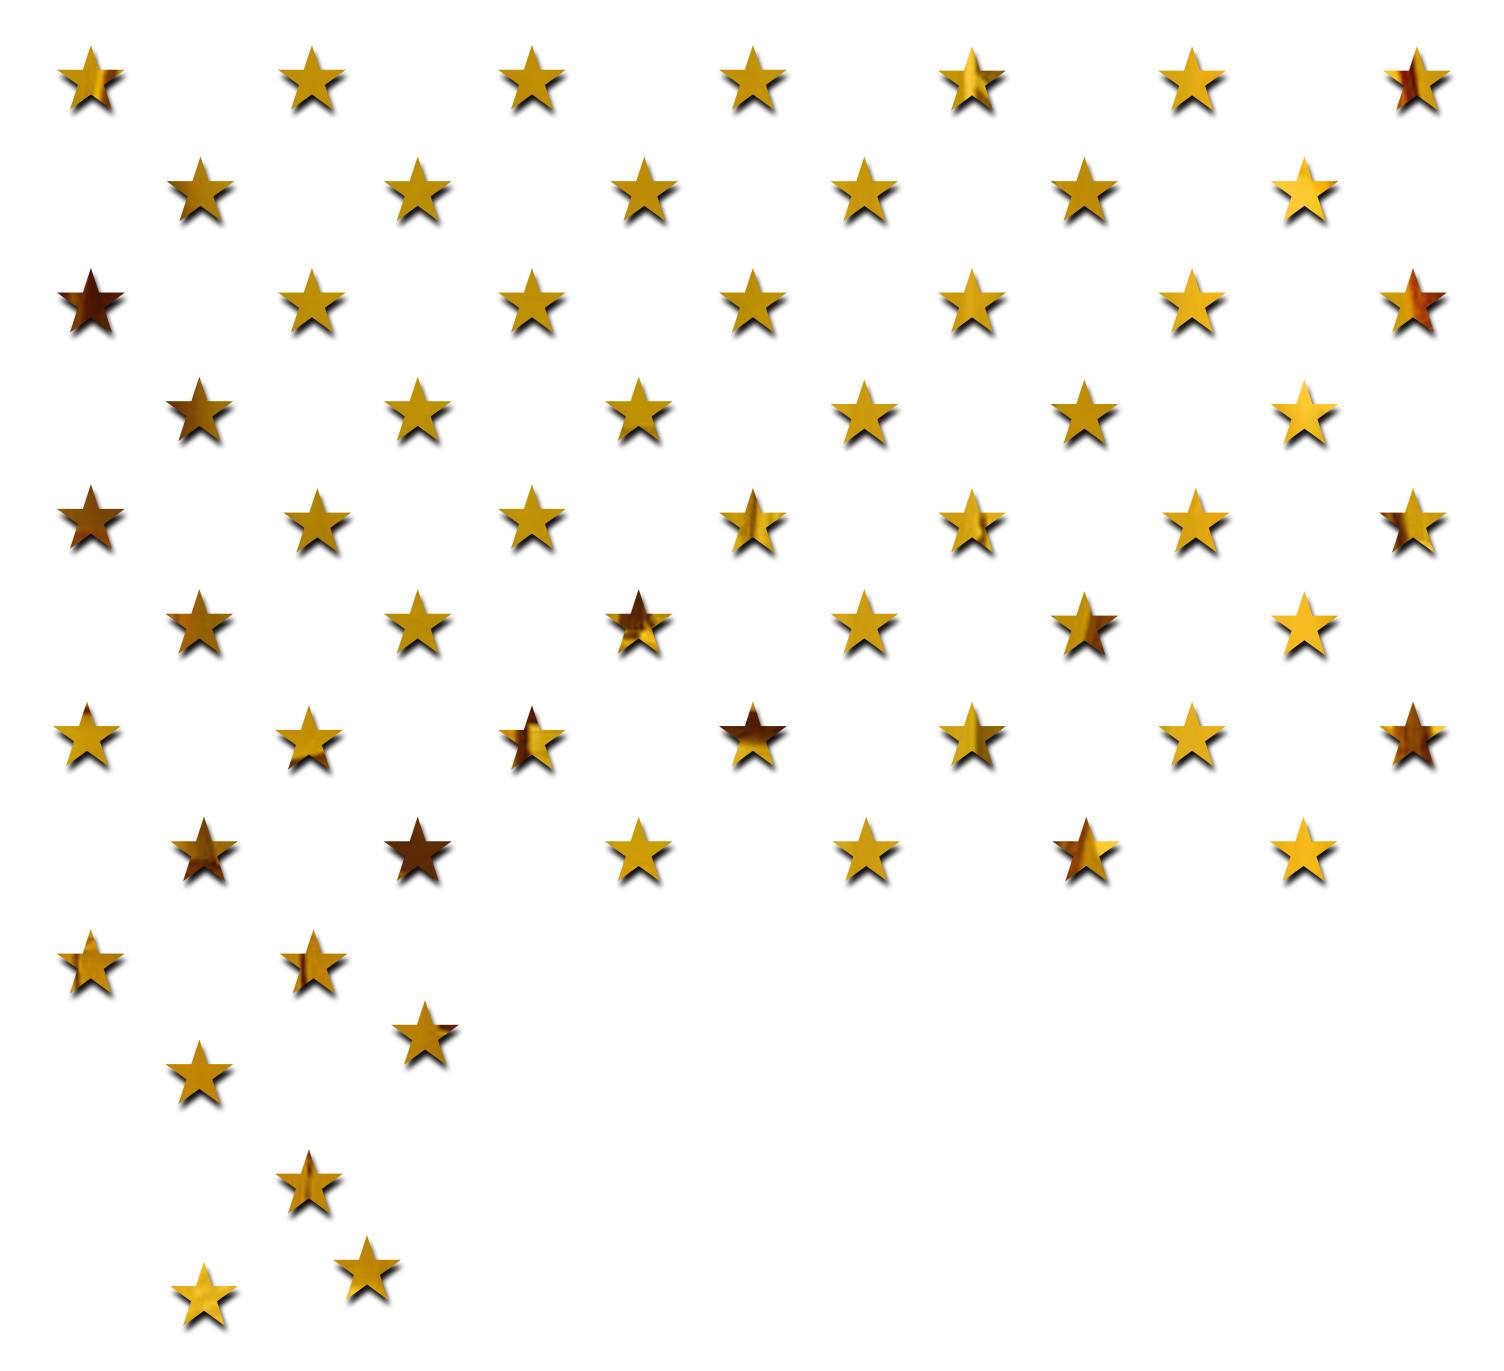 100 Star Golden  Each Piece Size 5 cm  PREMIUM QUALITY 3D Acrylic Mirror wall stickers for home office